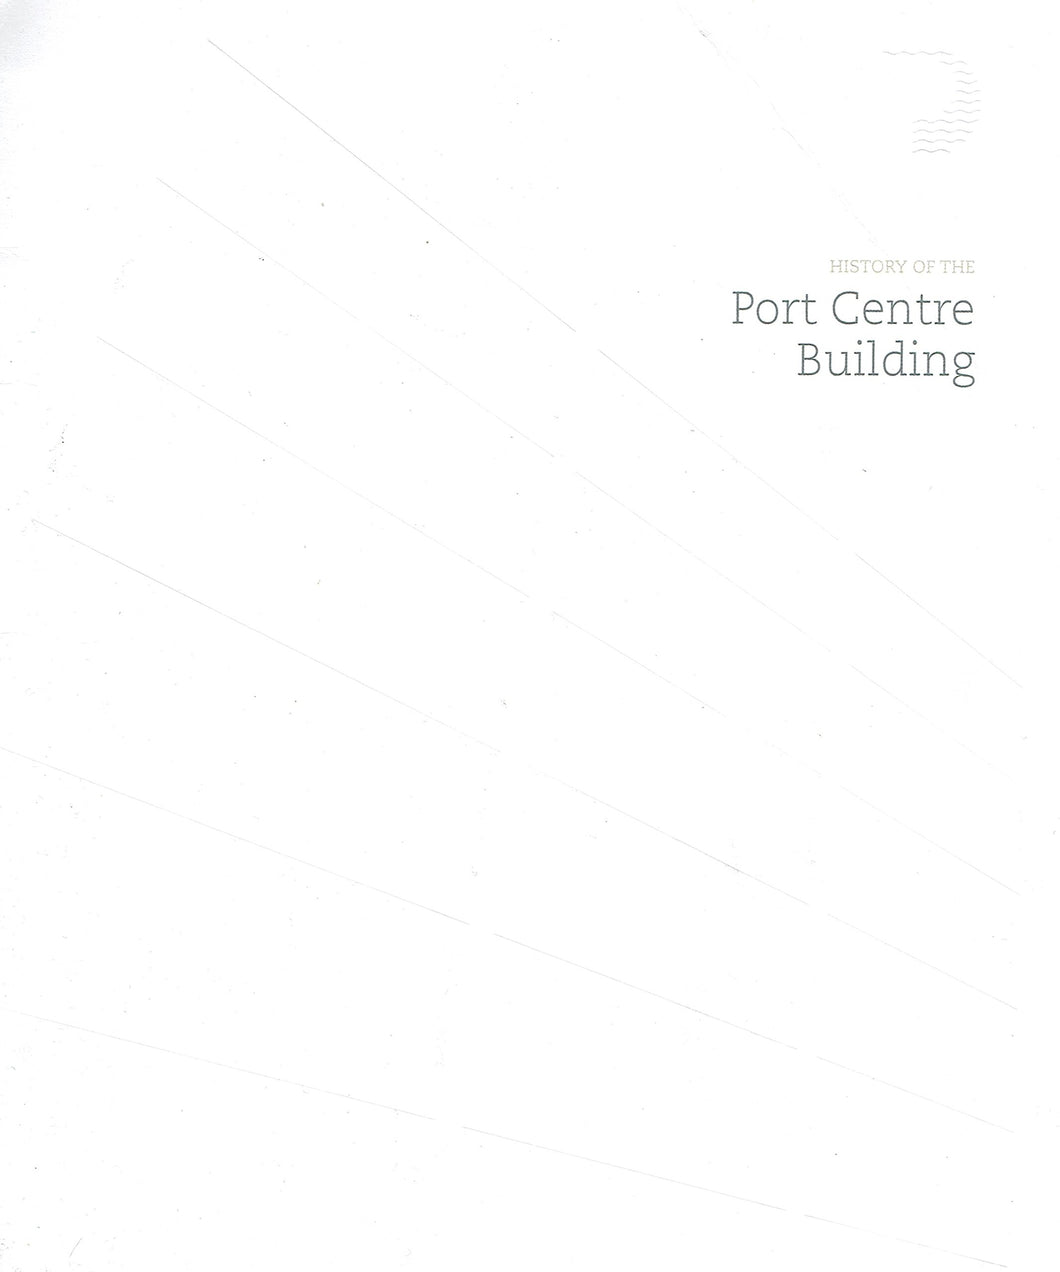 History of the Port Centre Building